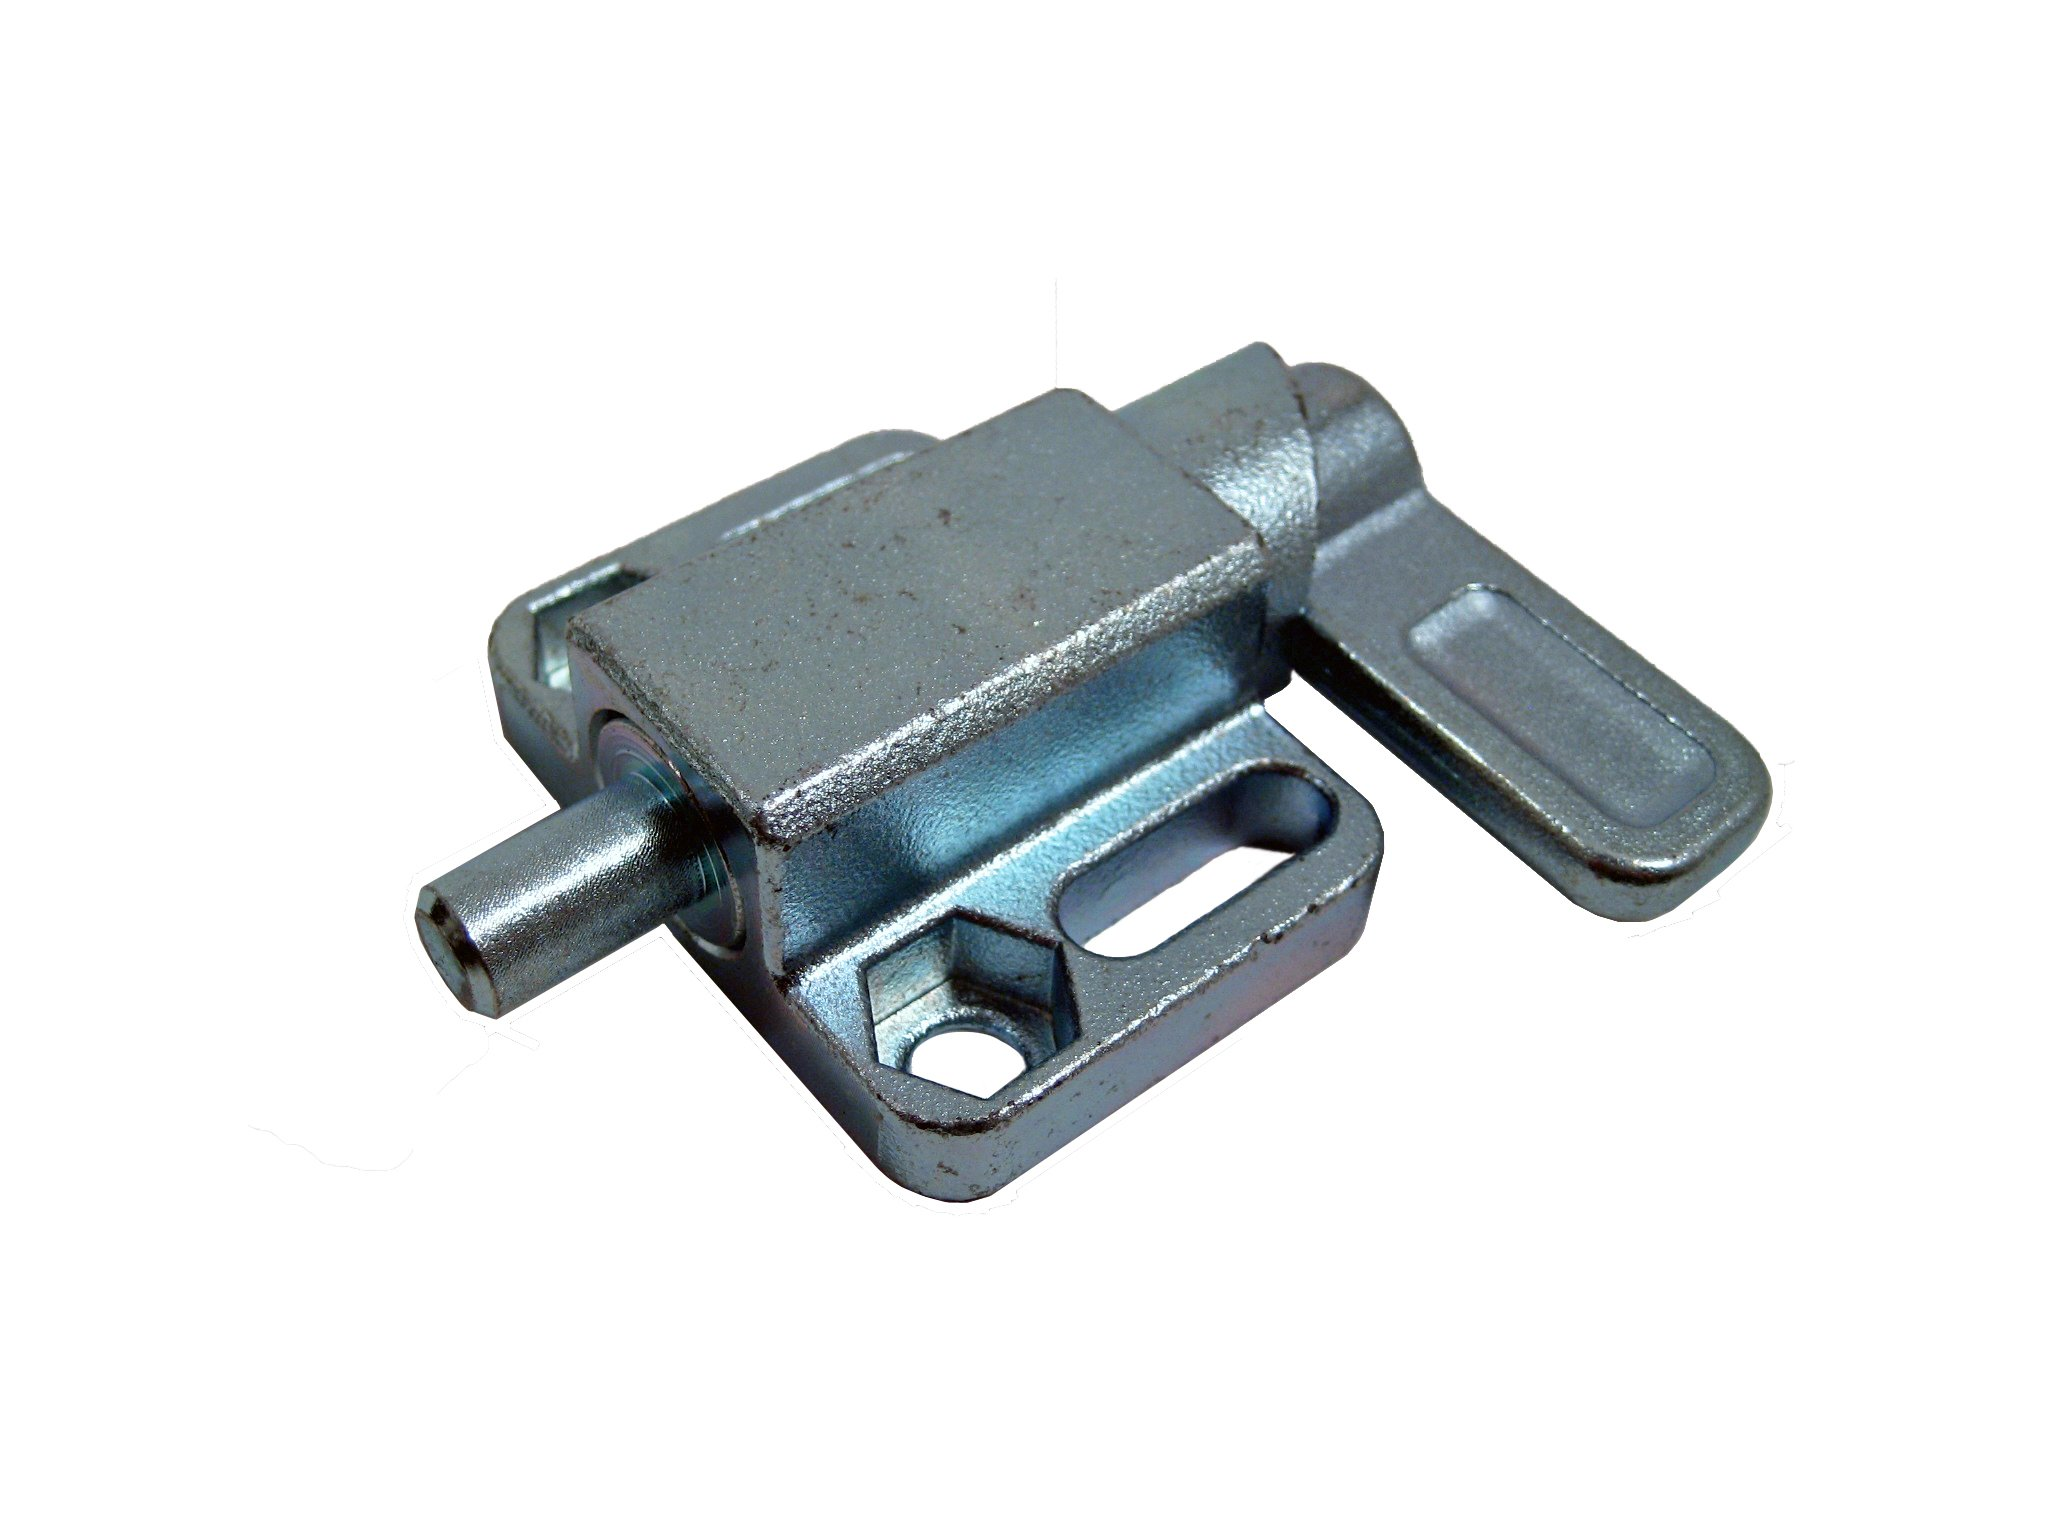 GN 722.3 Series Steel Square Spring Latche with Flange, Type L Left Indexing Cam, Zinc Plated Finish, 68mm Length, 8mm Diameter by JW Winco